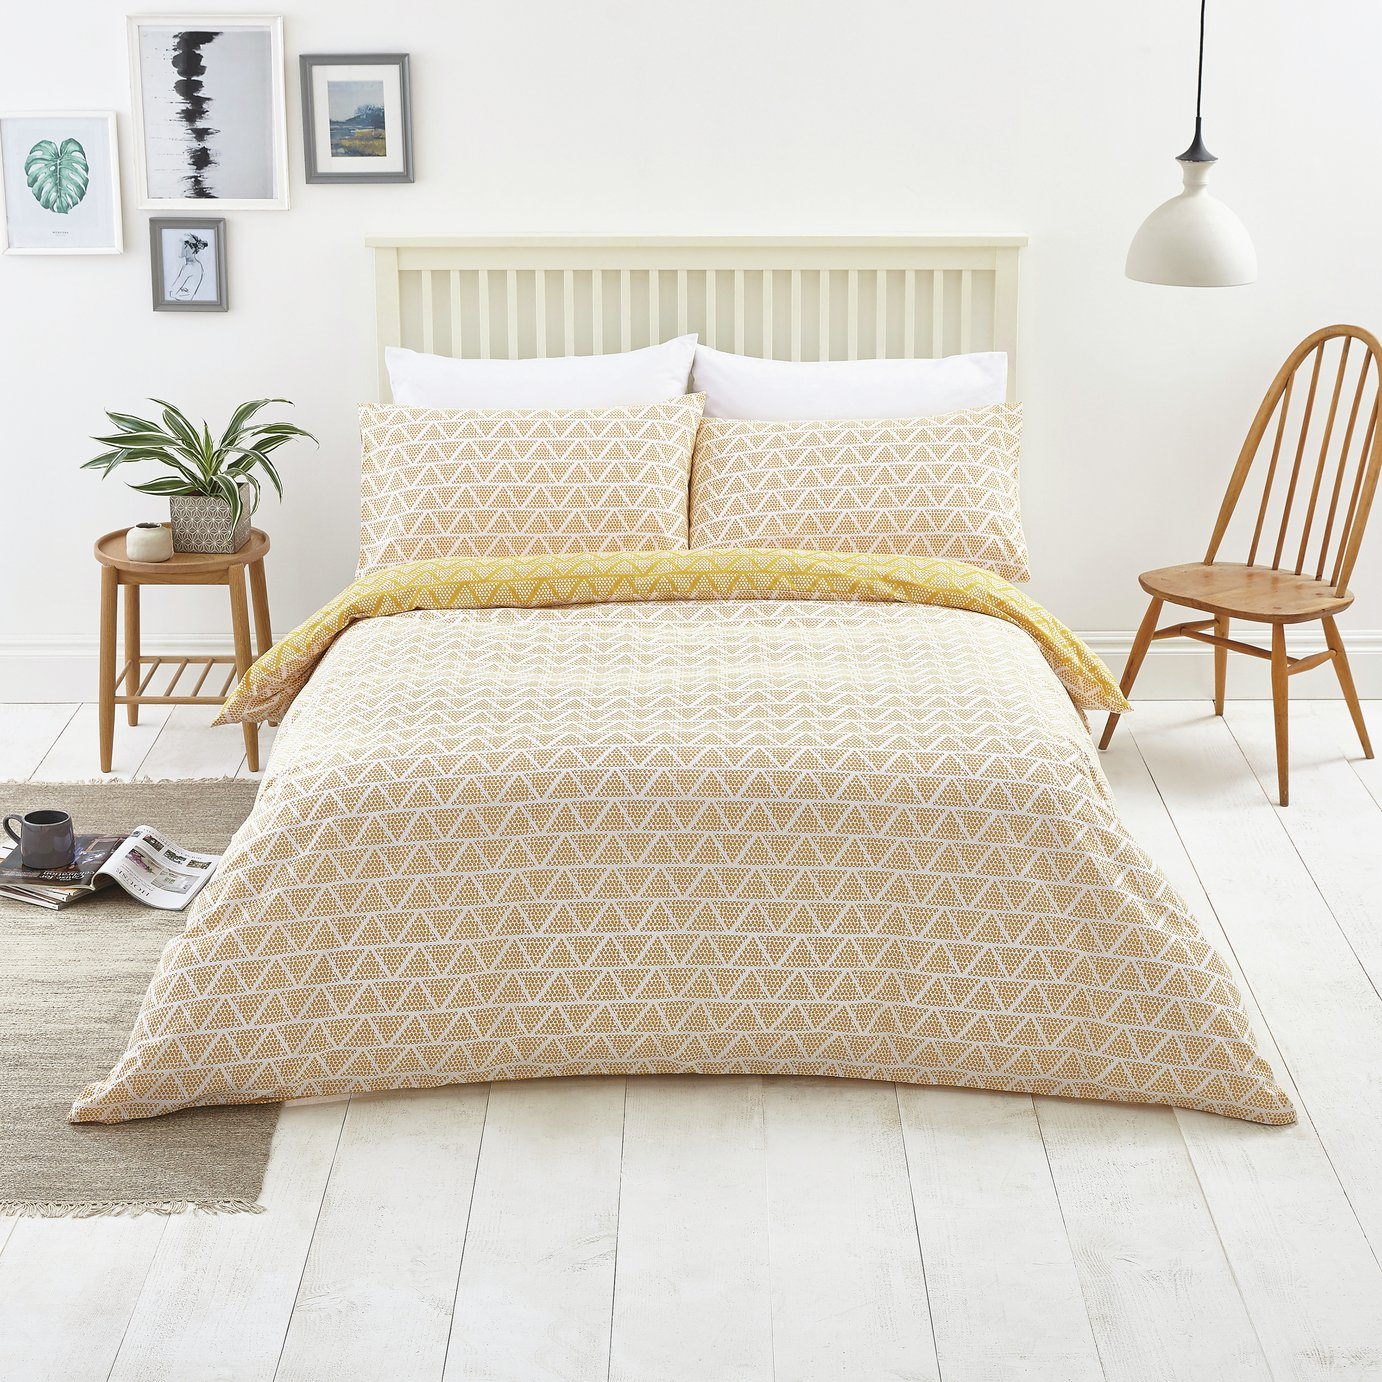 Argos Home Mustard Zig Zag and Dot Bedding Set - Kingsize